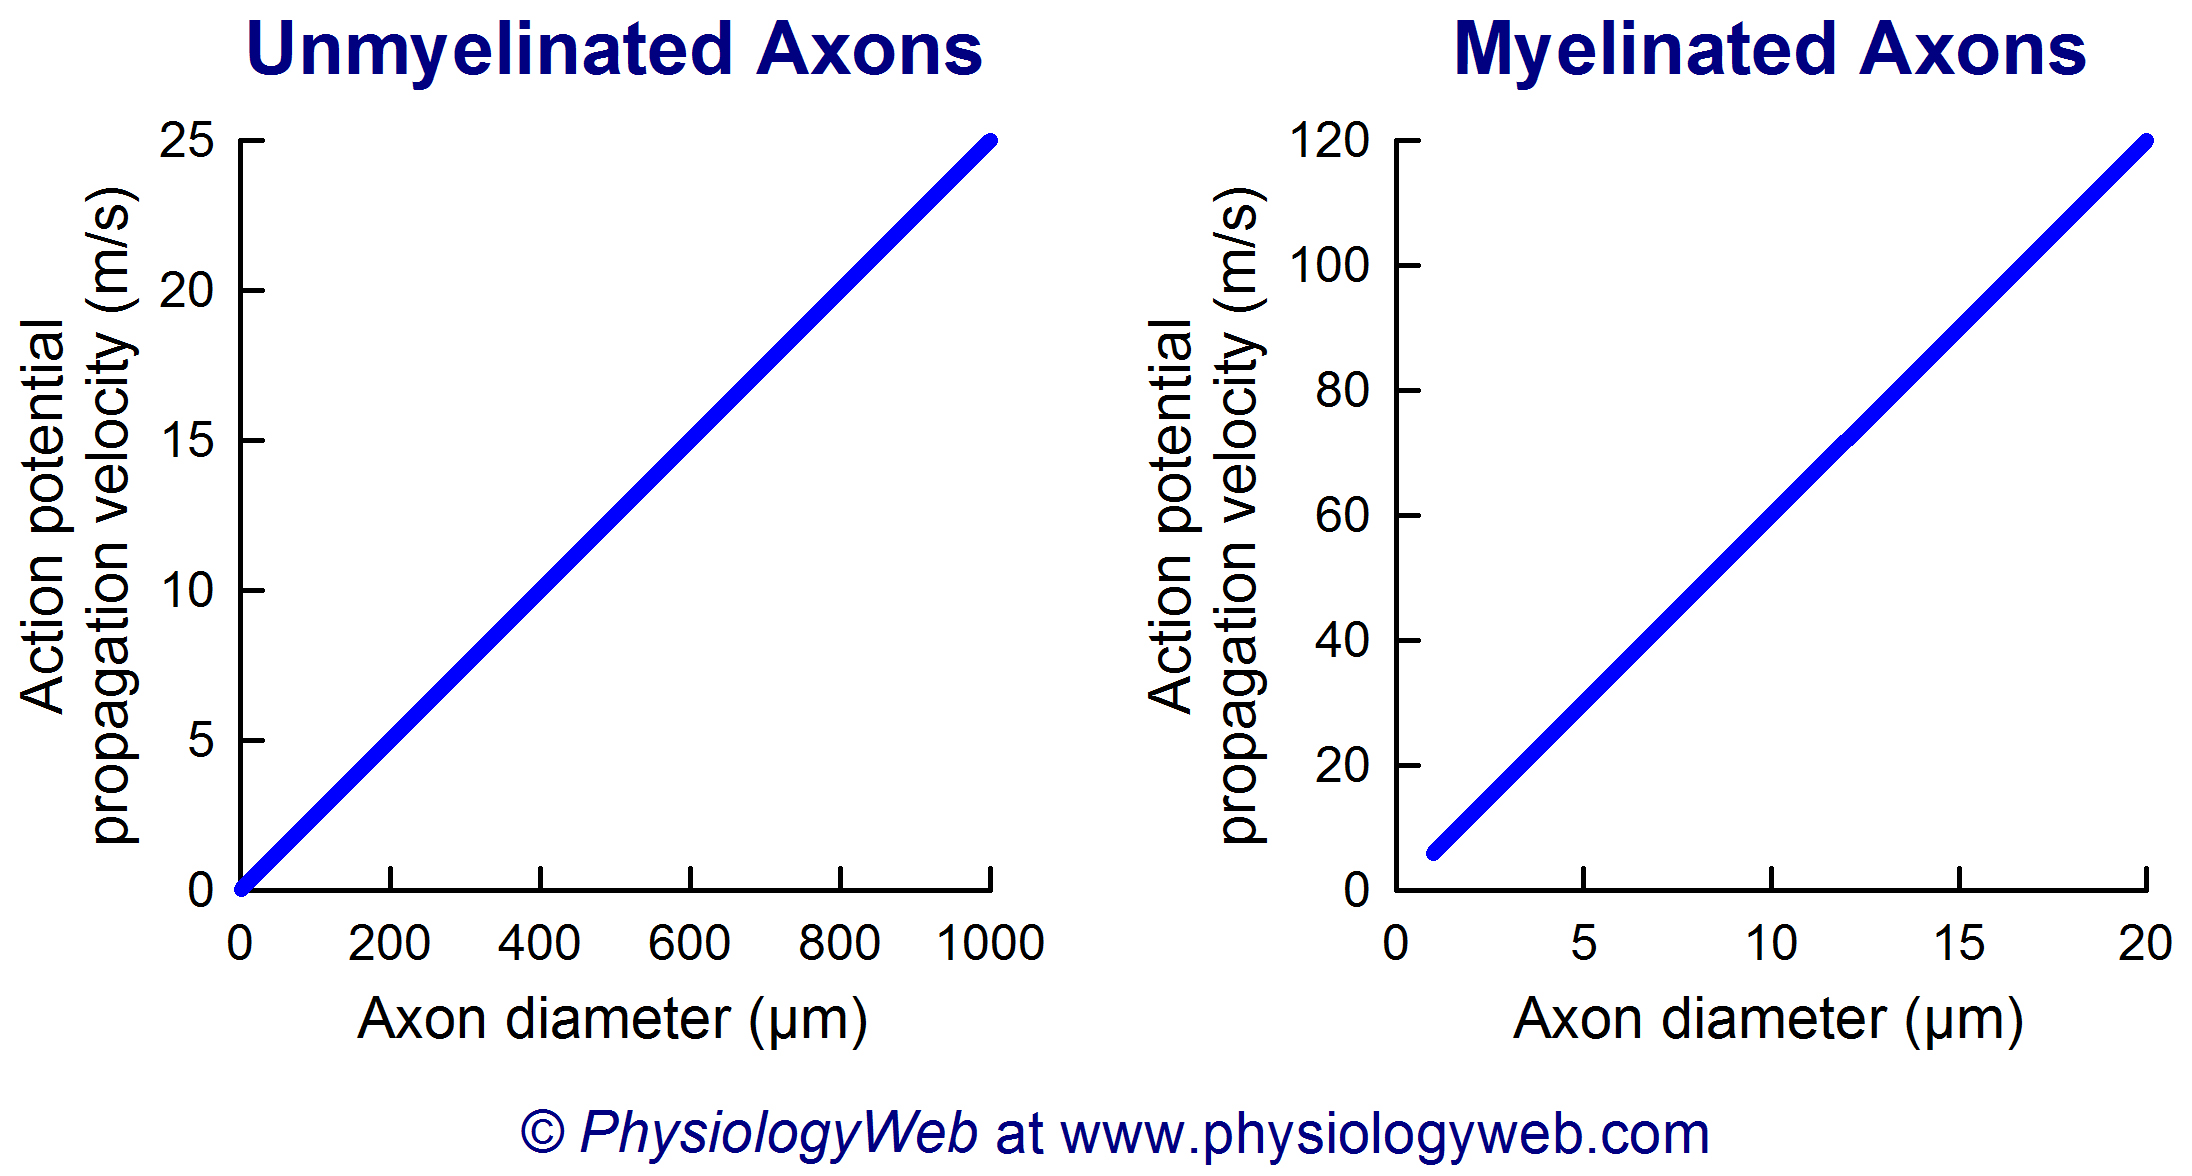 Action potential propagation velocity along unmyelinated and myelinated axons.